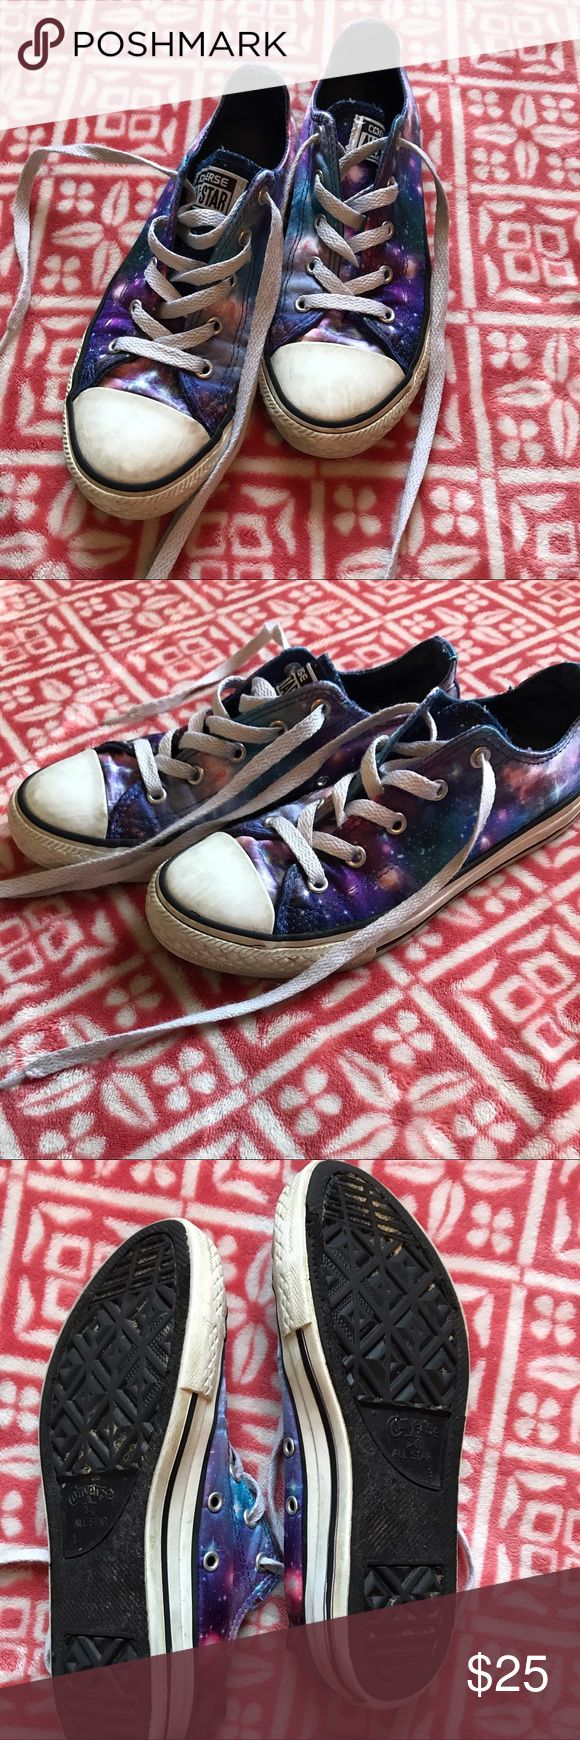 Galaxy Converse size 3 These are too cute with a satin finish galaxy print, in used condition, size 3 kids. Converse Shoes Sneakers